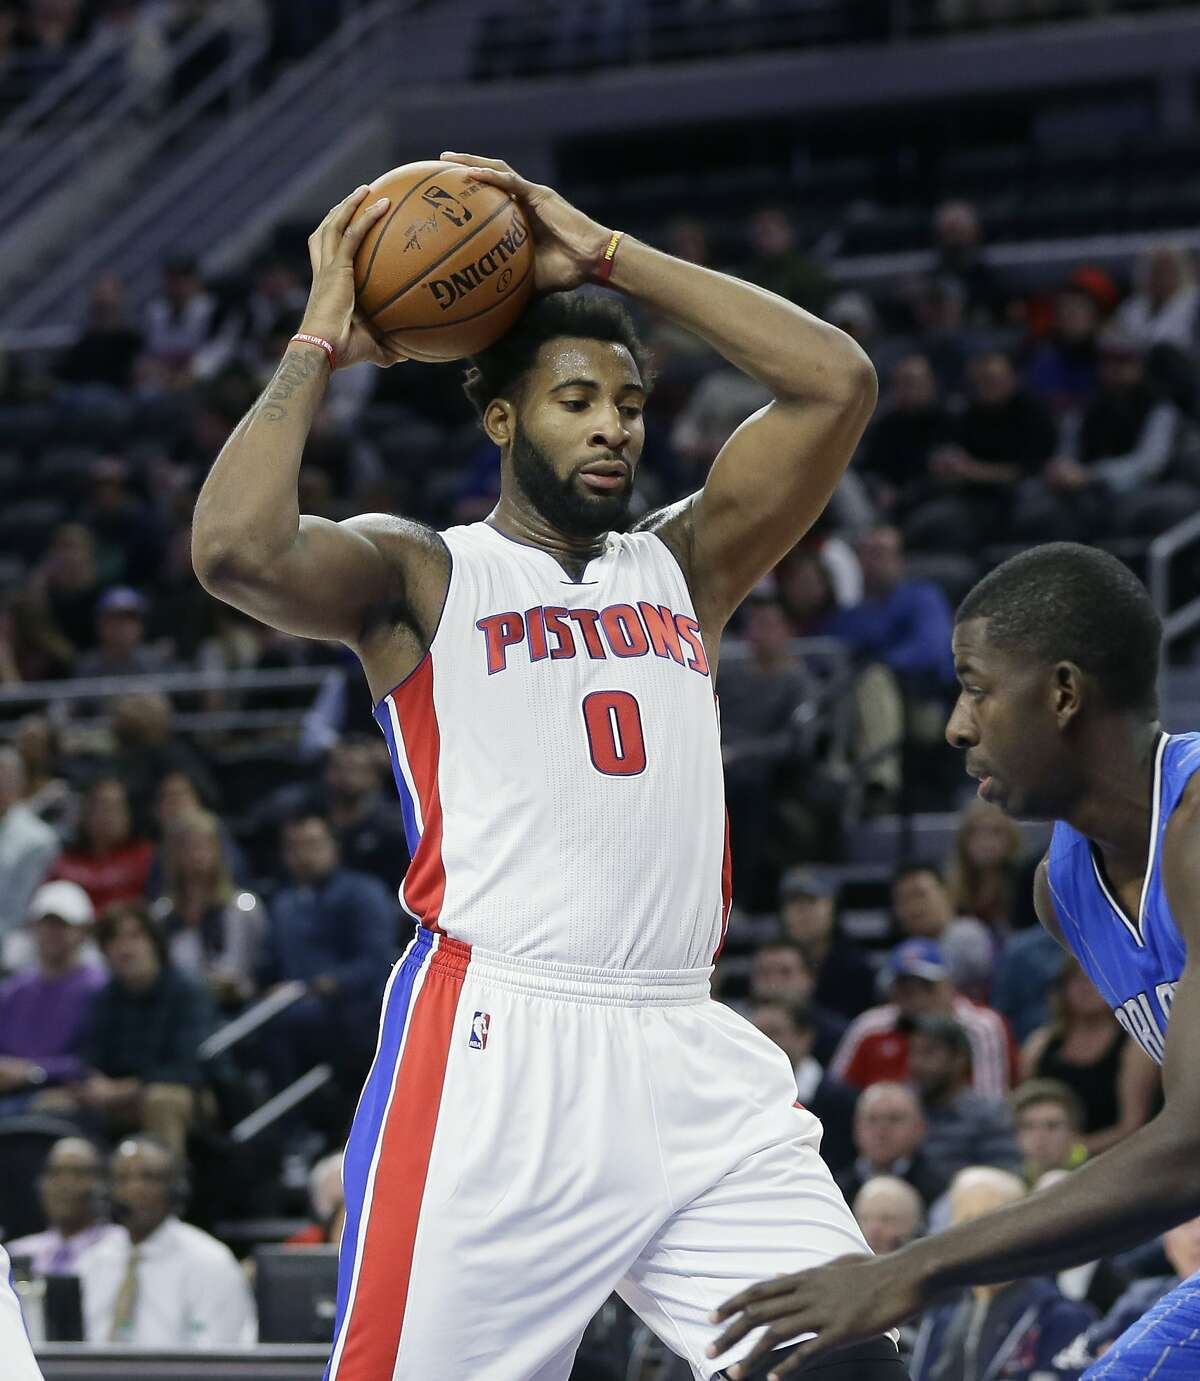 Andre Drummond, Detroit (restricted) Still growing into his potential, Drummond had a breakthrough season. There is no offer a team can make that the Pistons would not match.